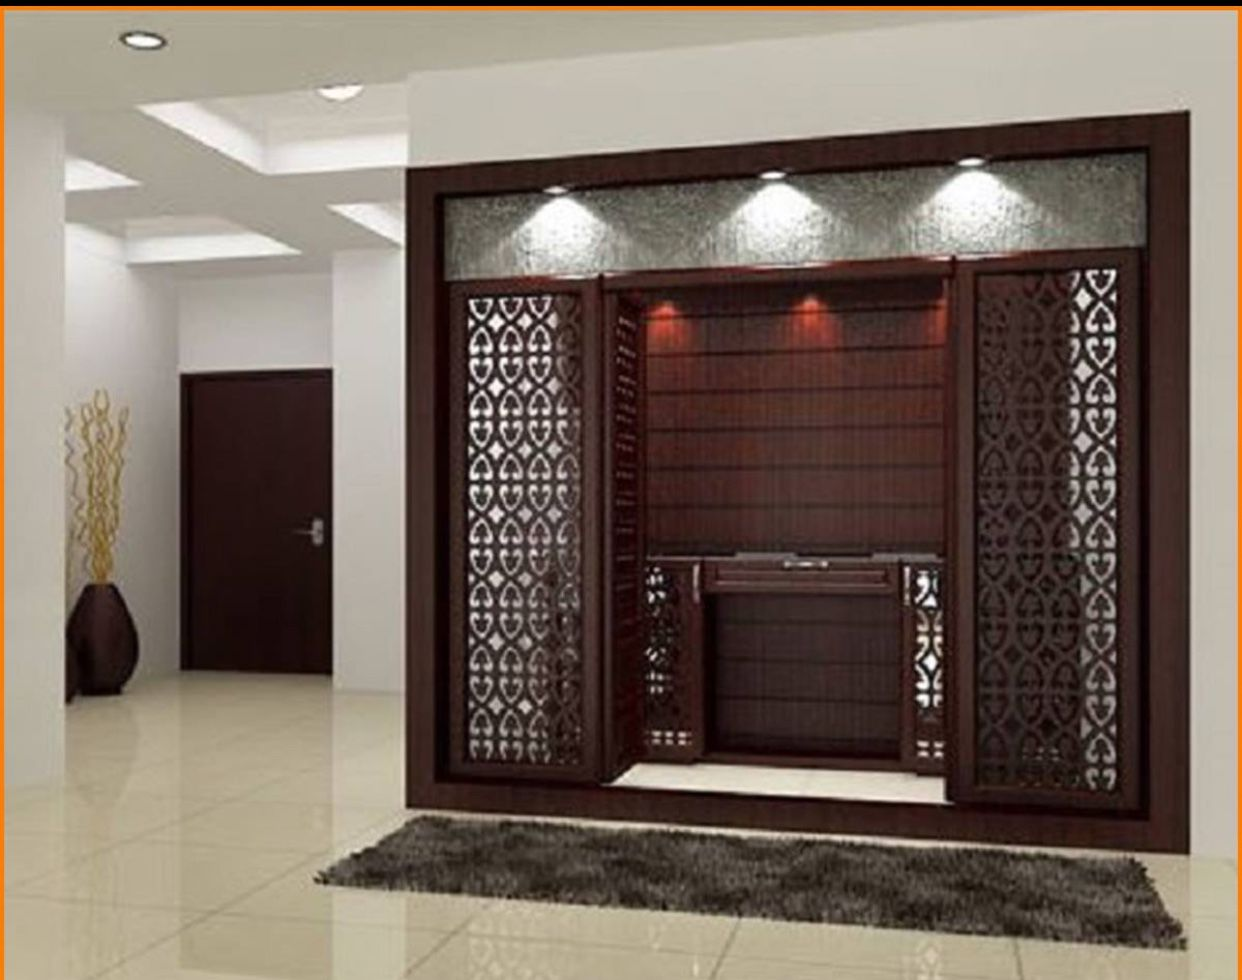 These Modern Pooja Room Designs Will Fill Your House with Divinity - Pooja Room and Rangoli Designs & Pin by SRI Sri on pooja room | Pinterest | Puja room Room and House